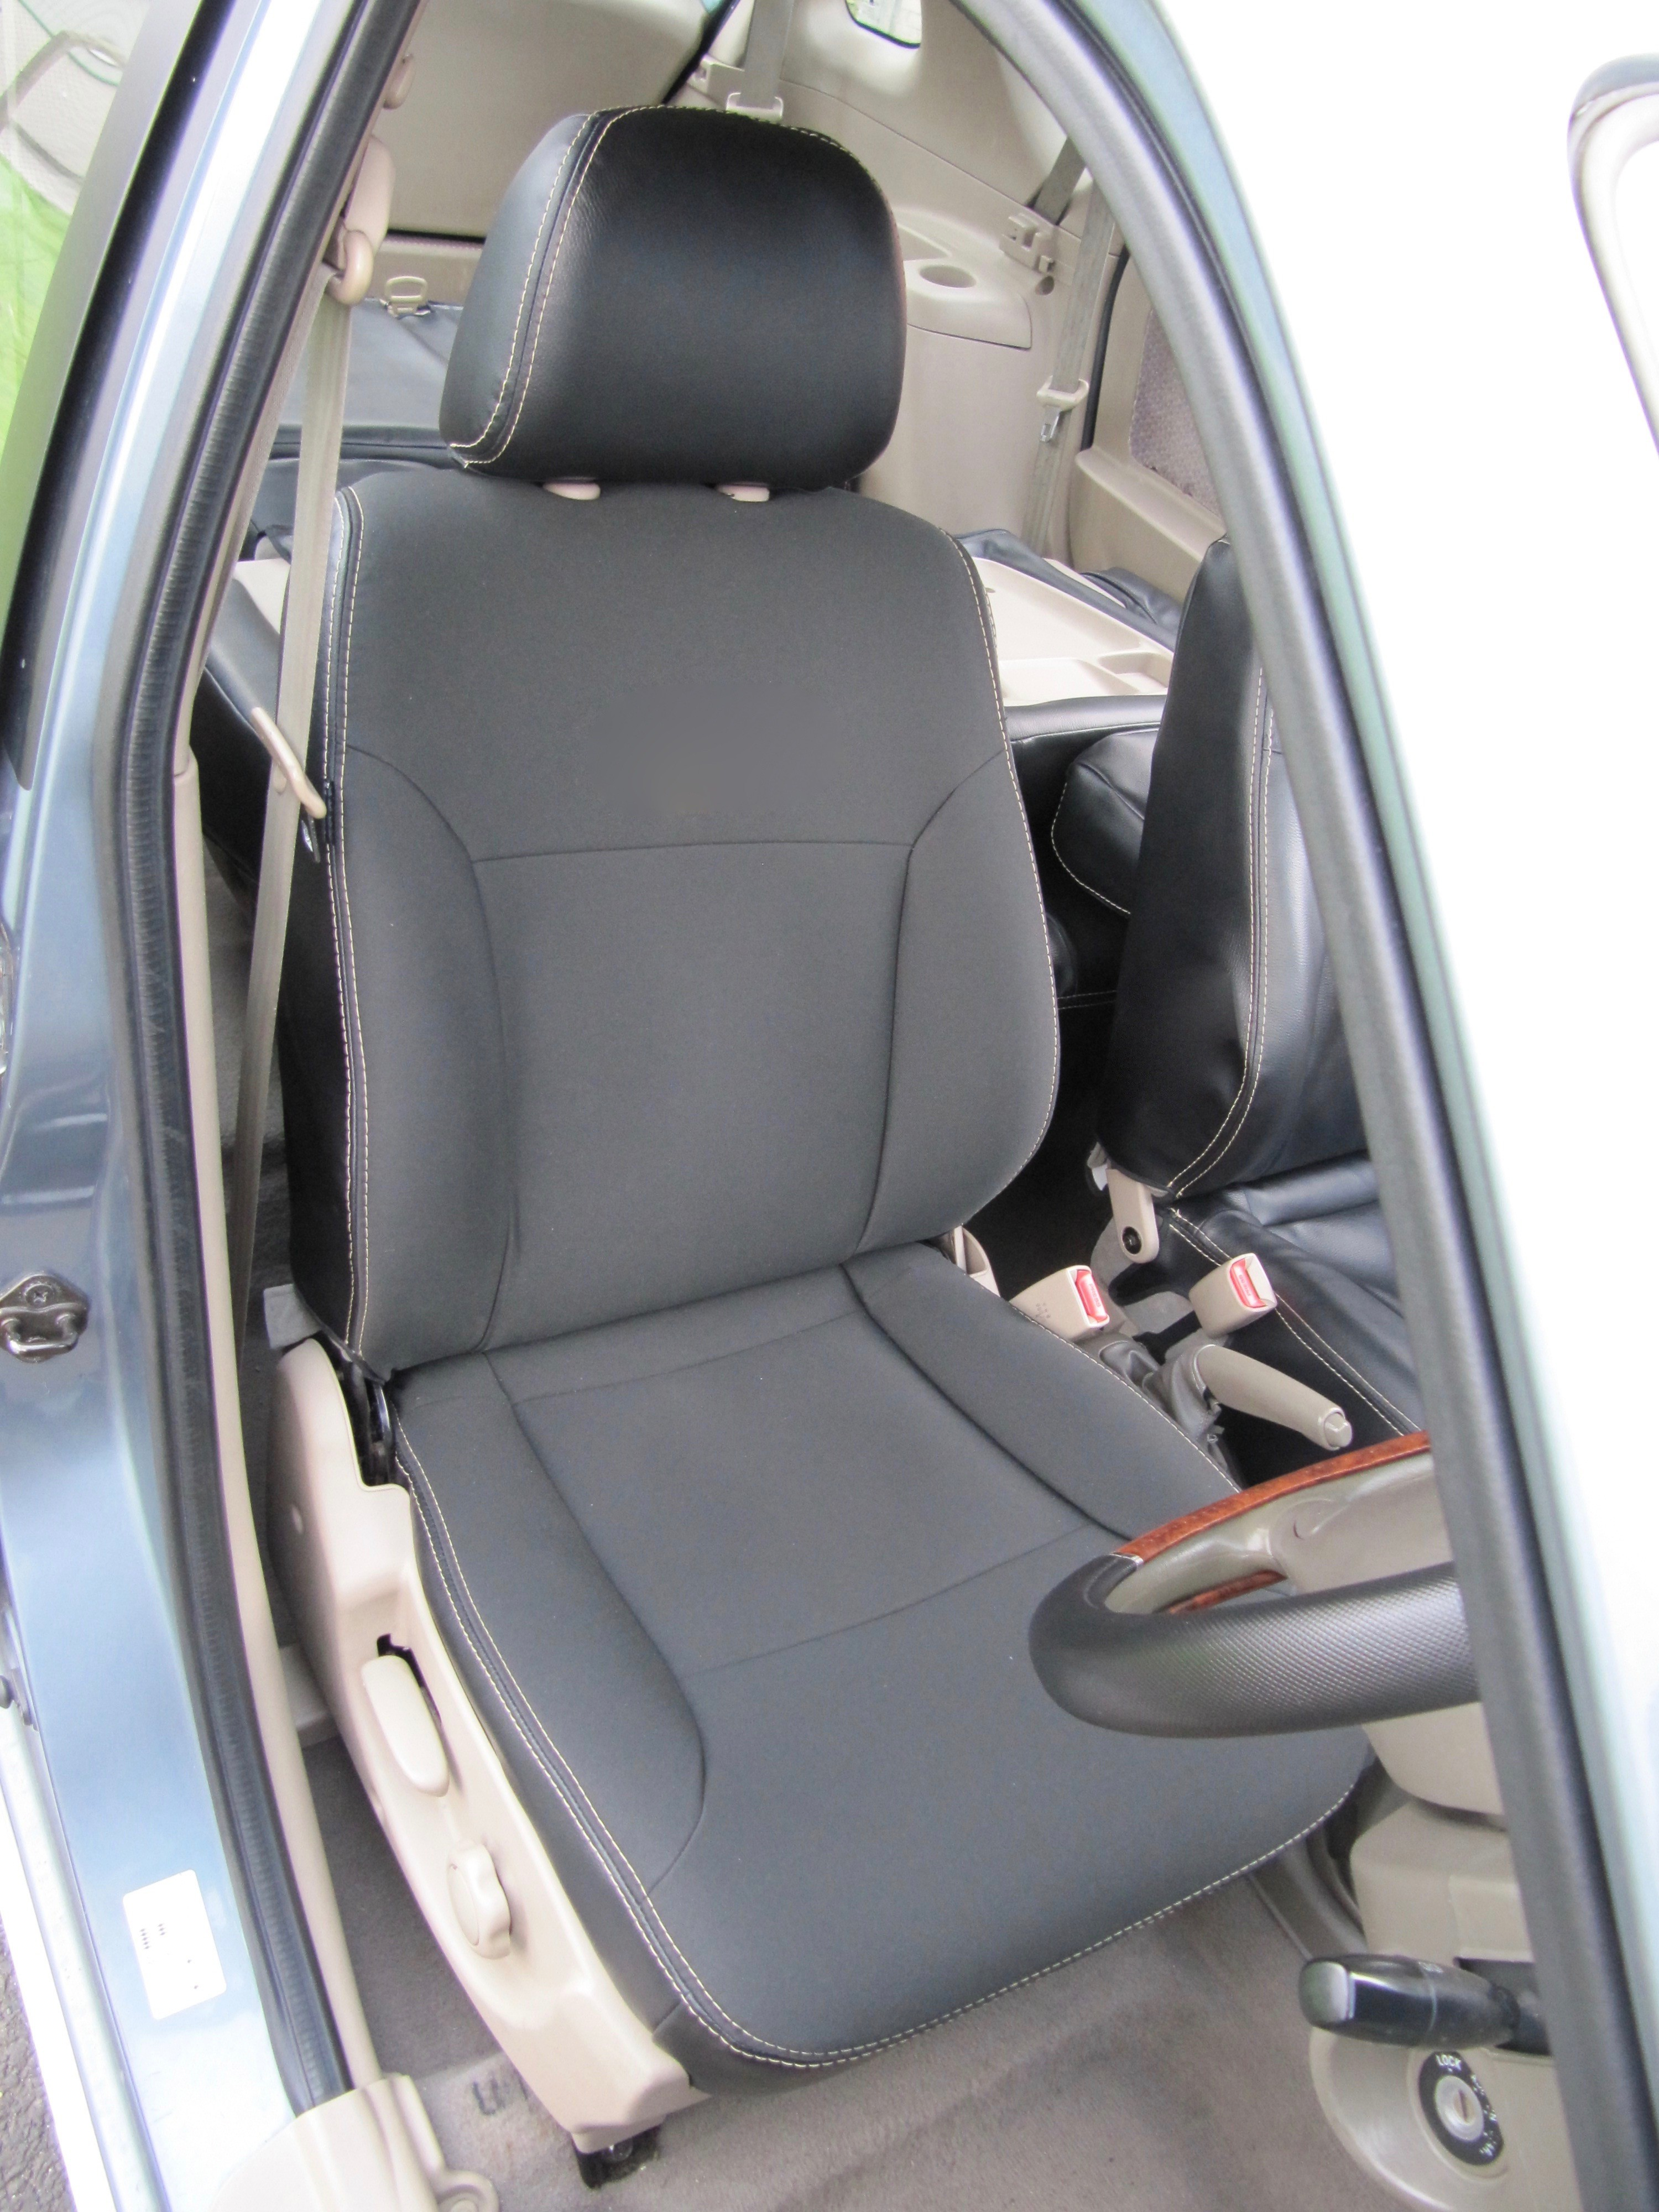 kia carens seat covers car seat covers direct tailored to your choice. Black Bedroom Furniture Sets. Home Design Ideas